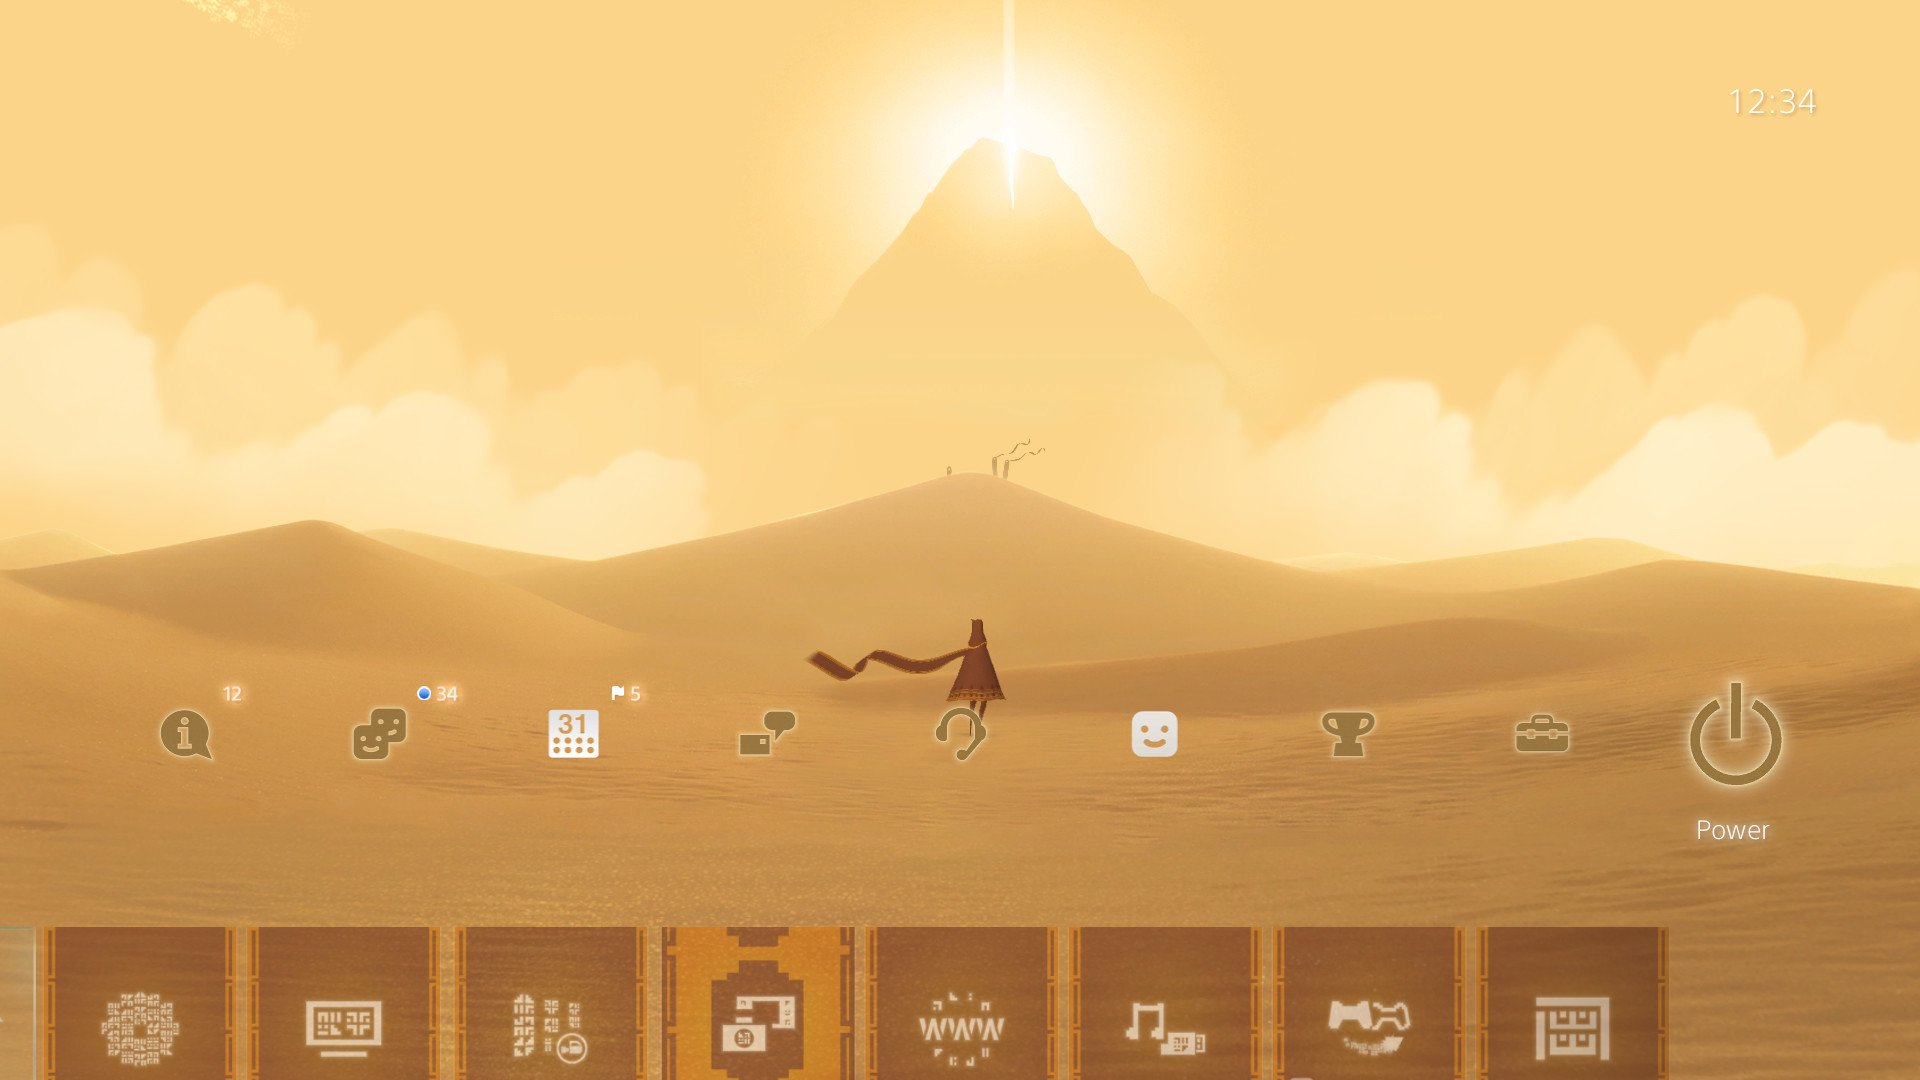 Journey S Ps4 Promotional Image May Have Outed A New